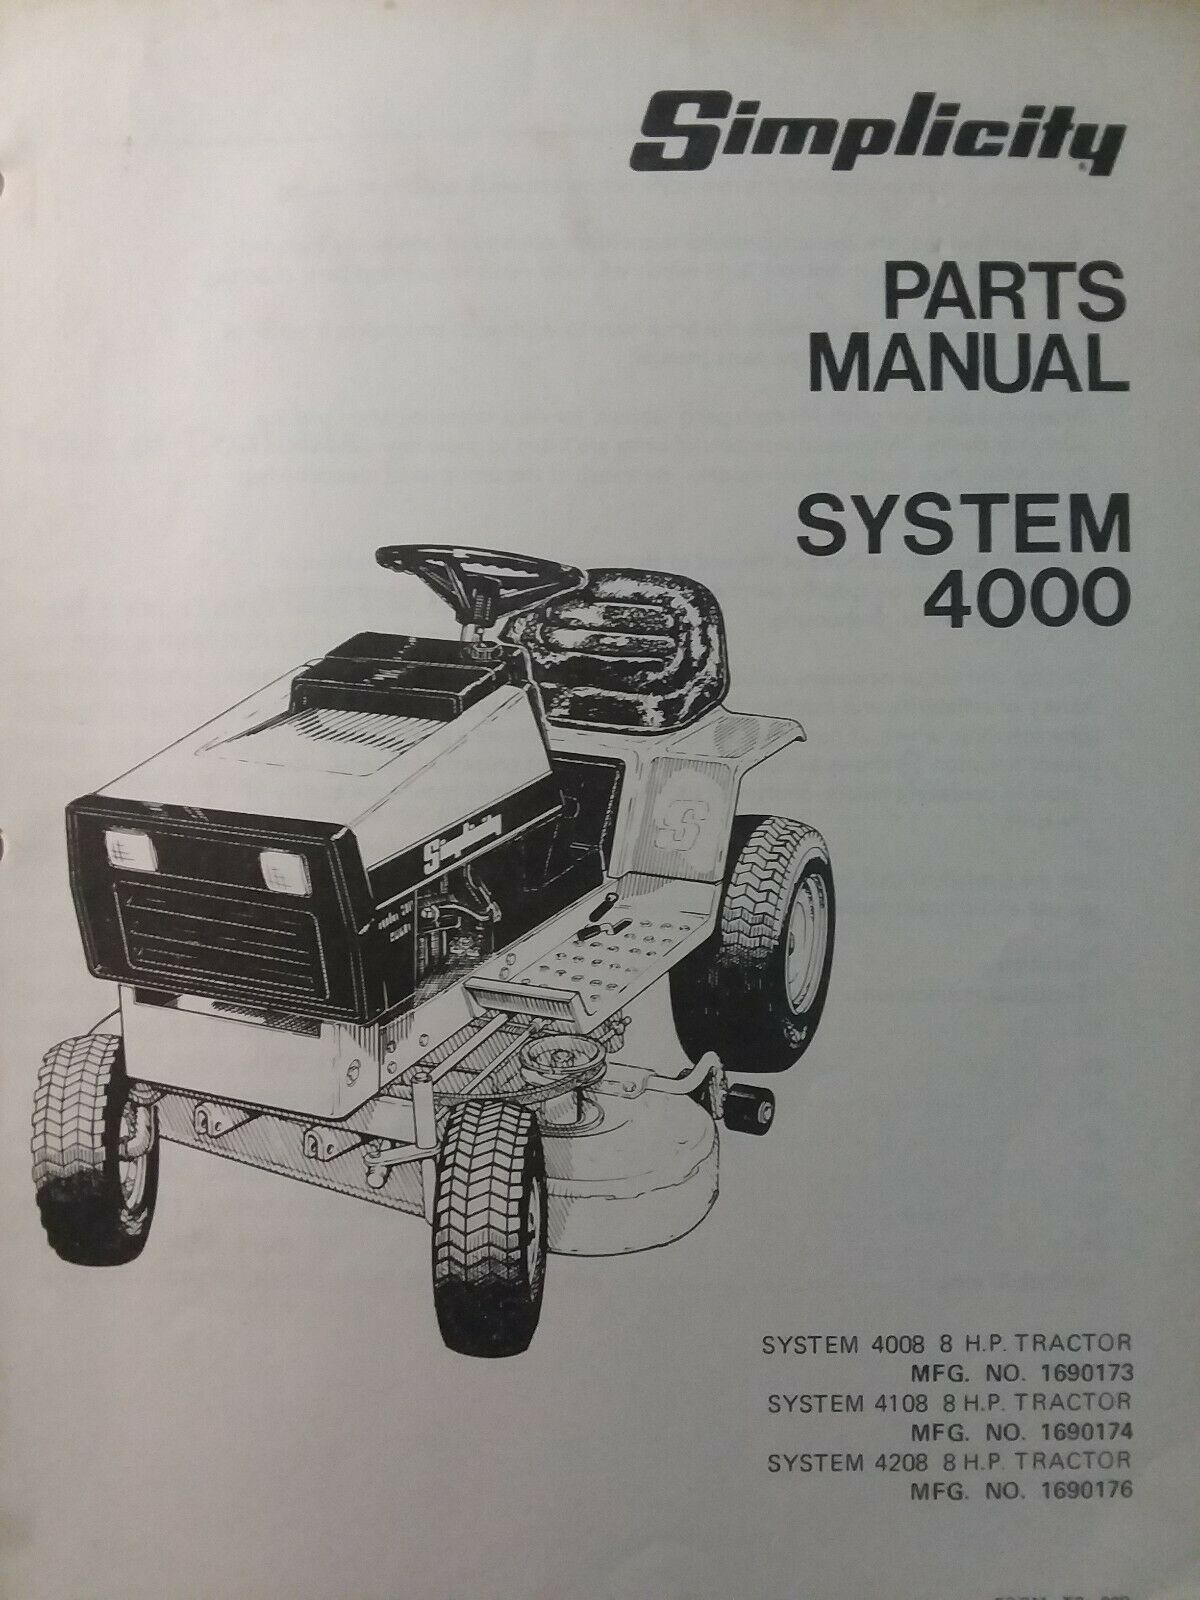 hight resolution of simplicity 4008 4208 4108 lawn tractor mow parts manual 1690173 1690174 1690176 for sale online